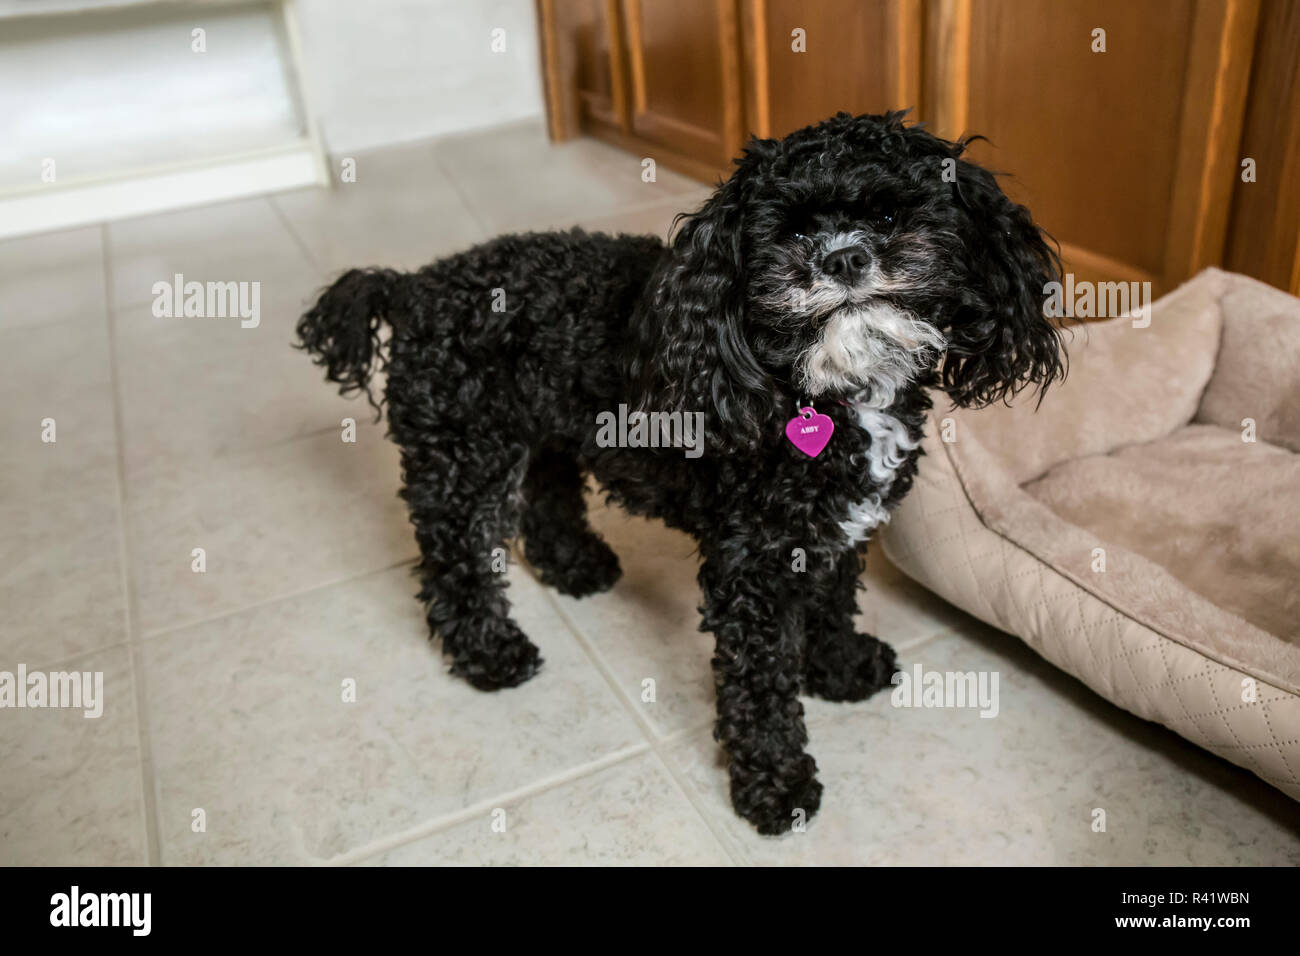 Barbone Toy High Resolution Stock Photography And Images Alamy